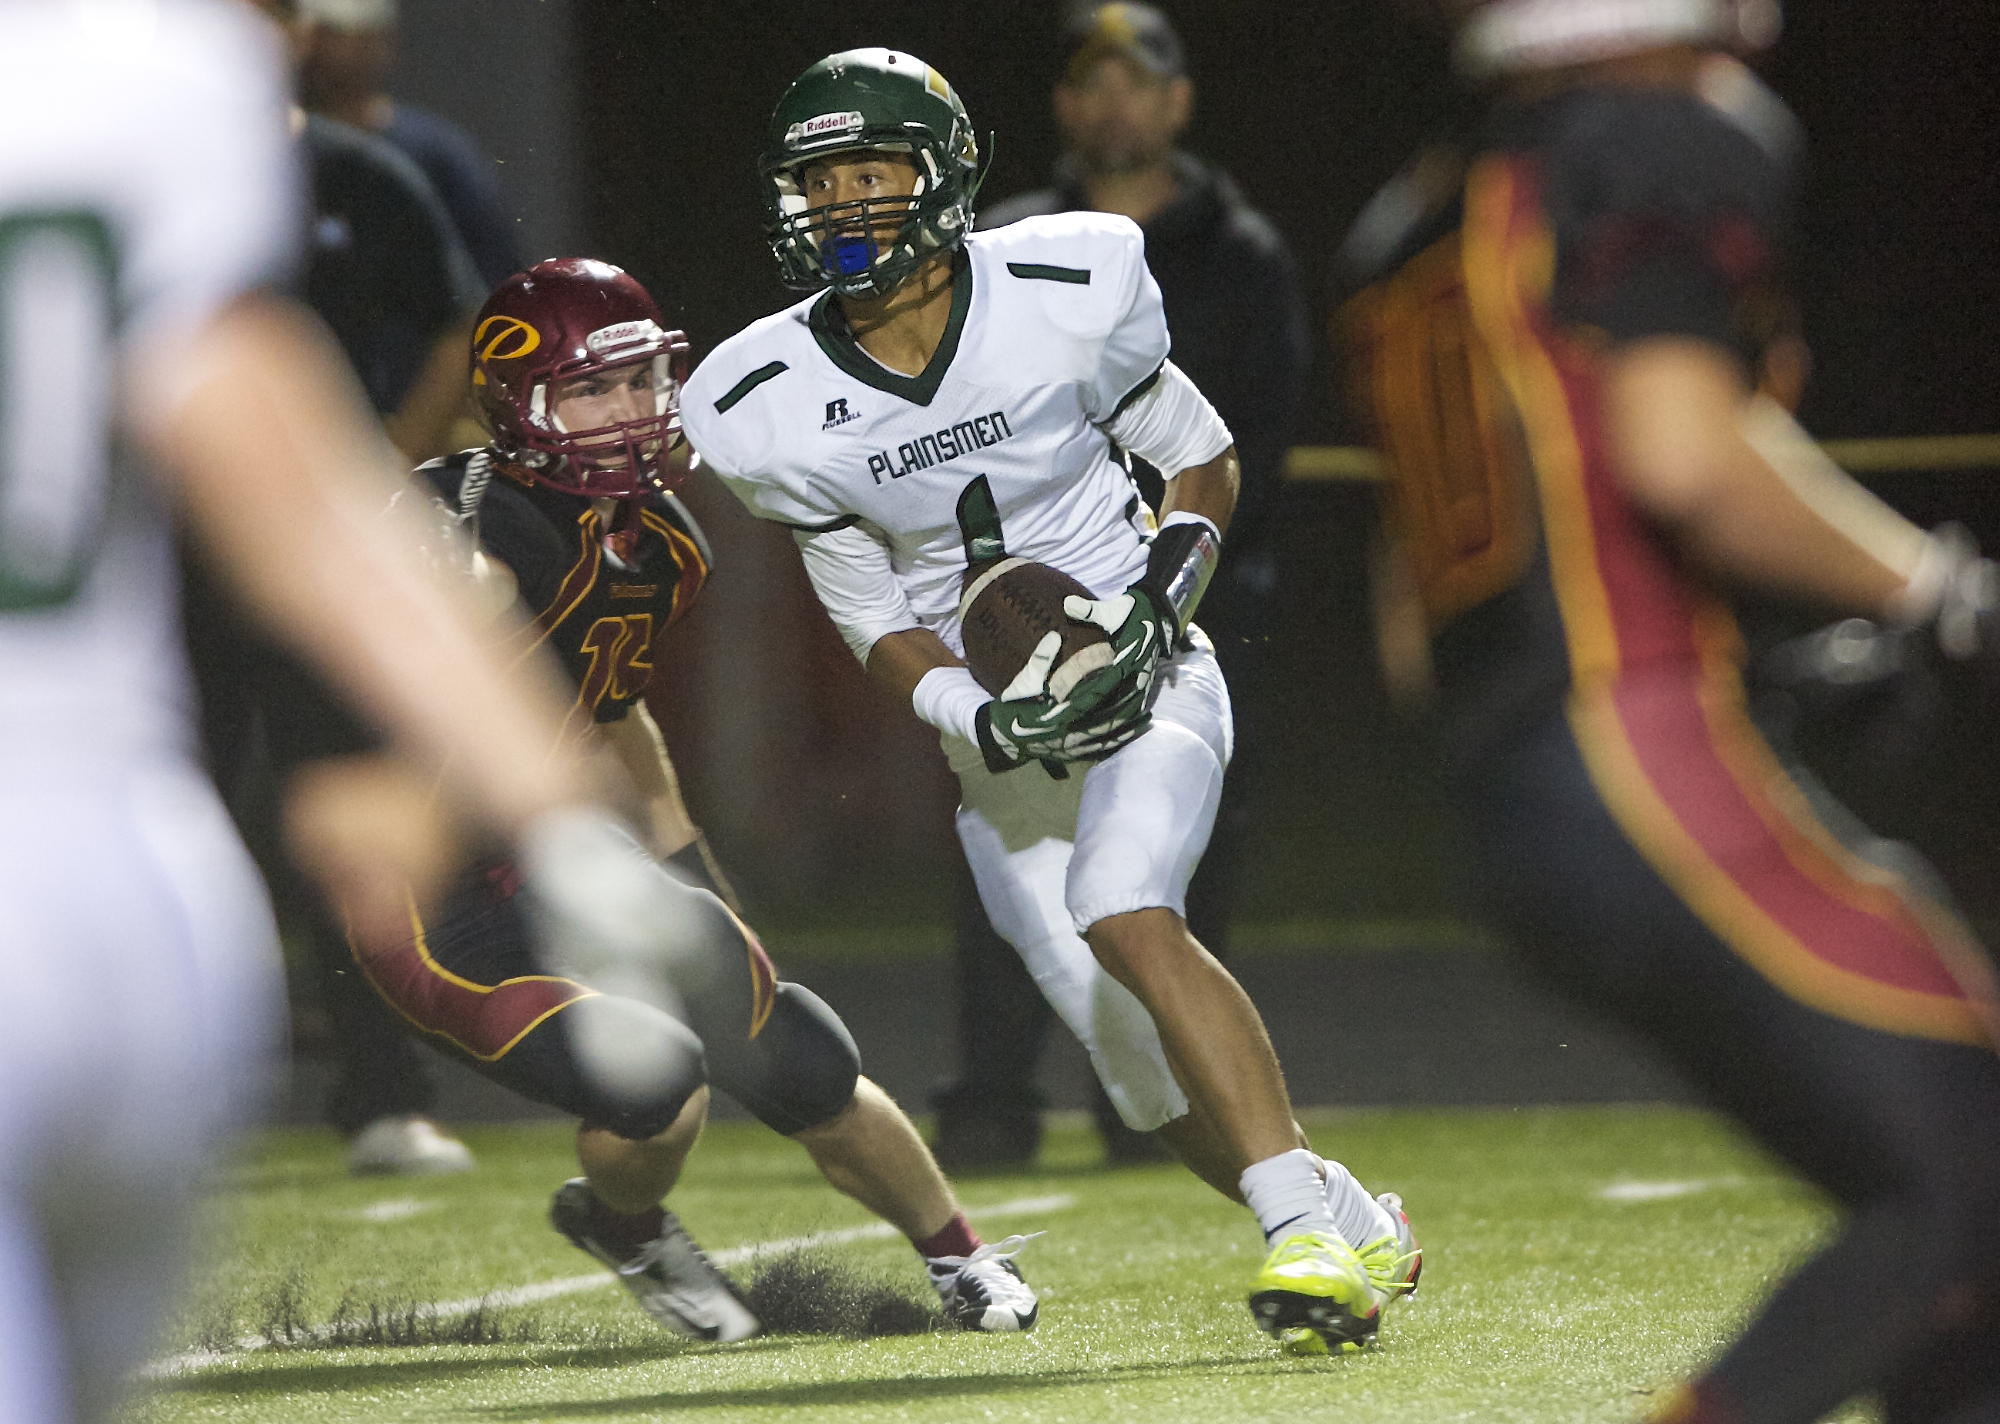 Evergreen's Justice Murphy converts a two-point conversion to put the Plainsmen up 29-20 over Prairie late in the fourth quarter at District Stadium on Friday September 20, 2013. (Zachary Kaufman/The Columbian)